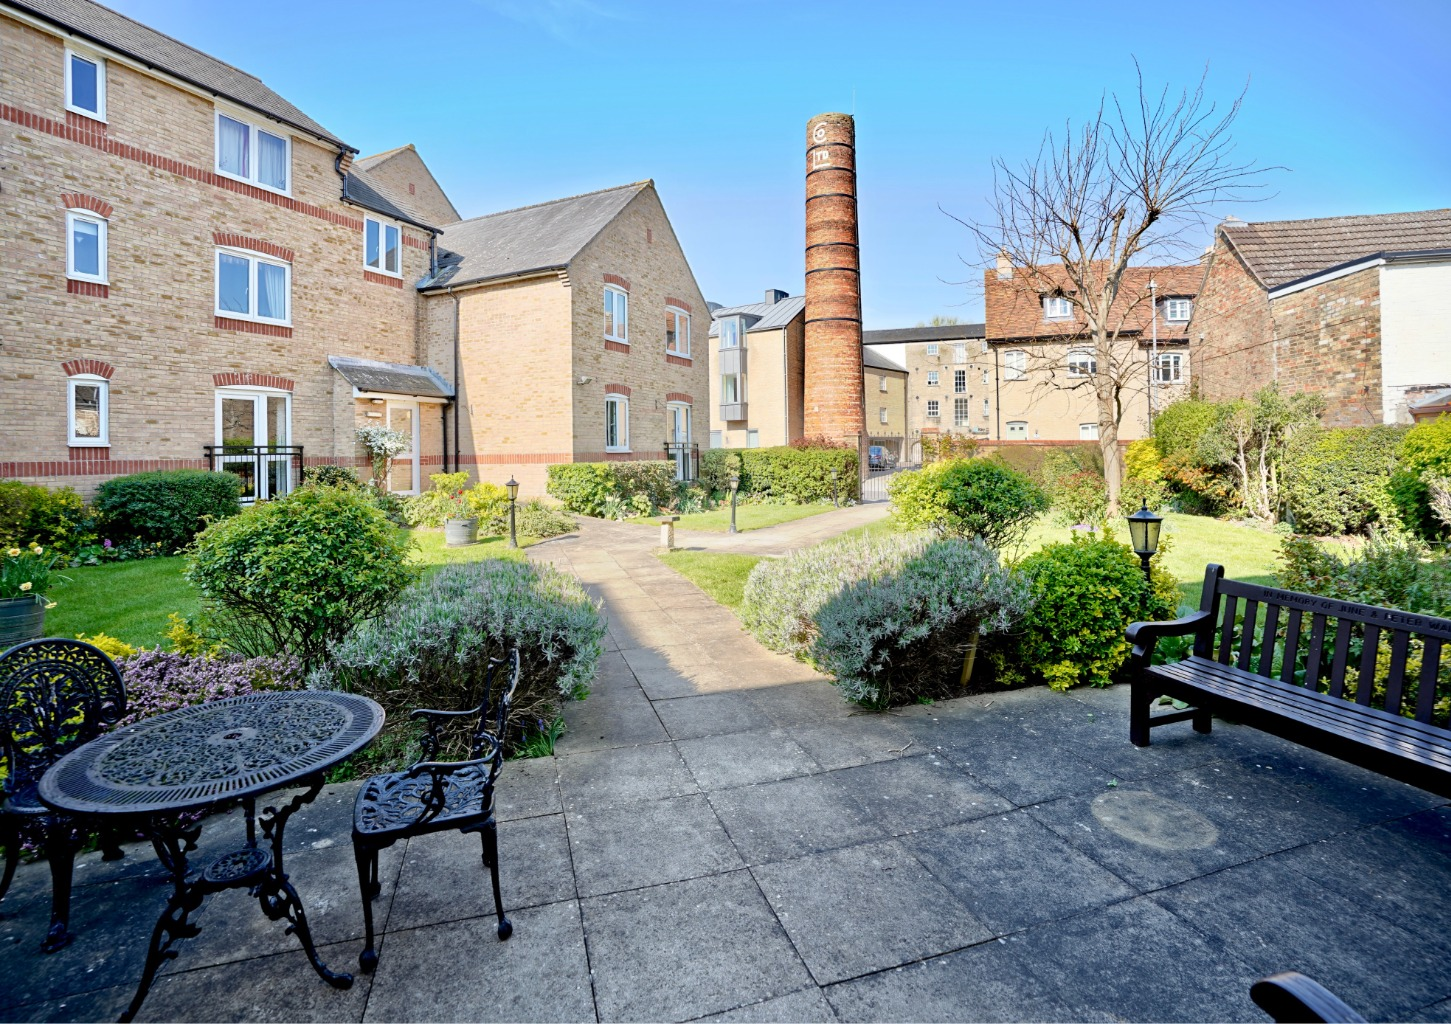 1 bed flat for sale in Church Street, St. Neots, PE19